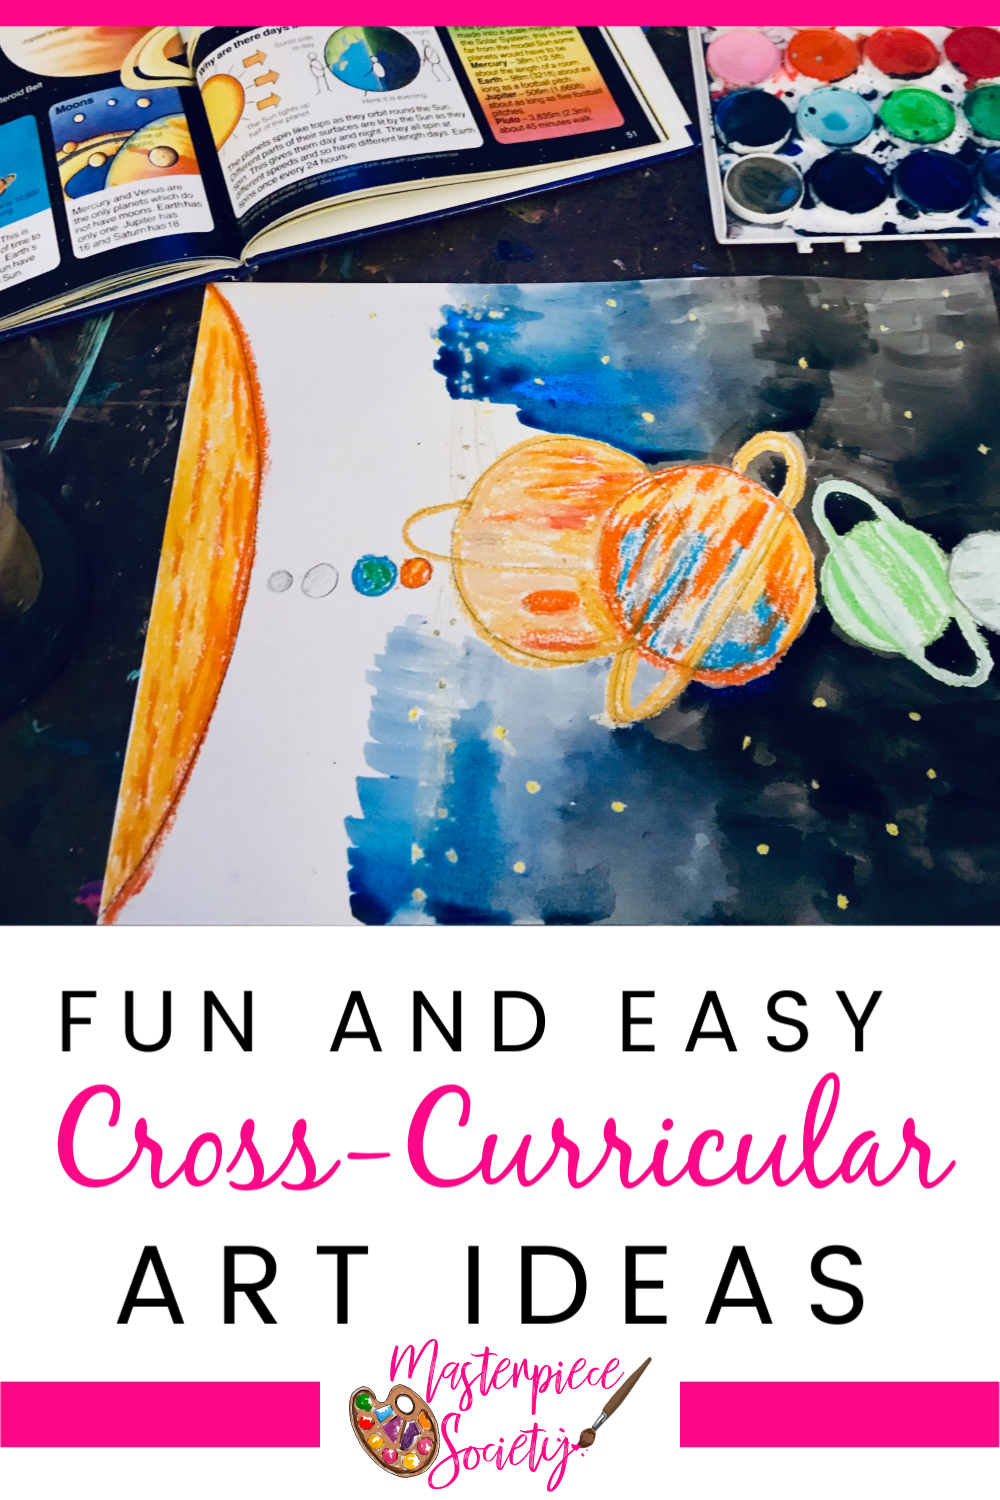 Including Creativity Every Day Fun And Easy Cross Curricular Art Ideas Masterpiece Society In 2020 Homeschool Art Projects Homeschool Art Homeschool Art Lesson